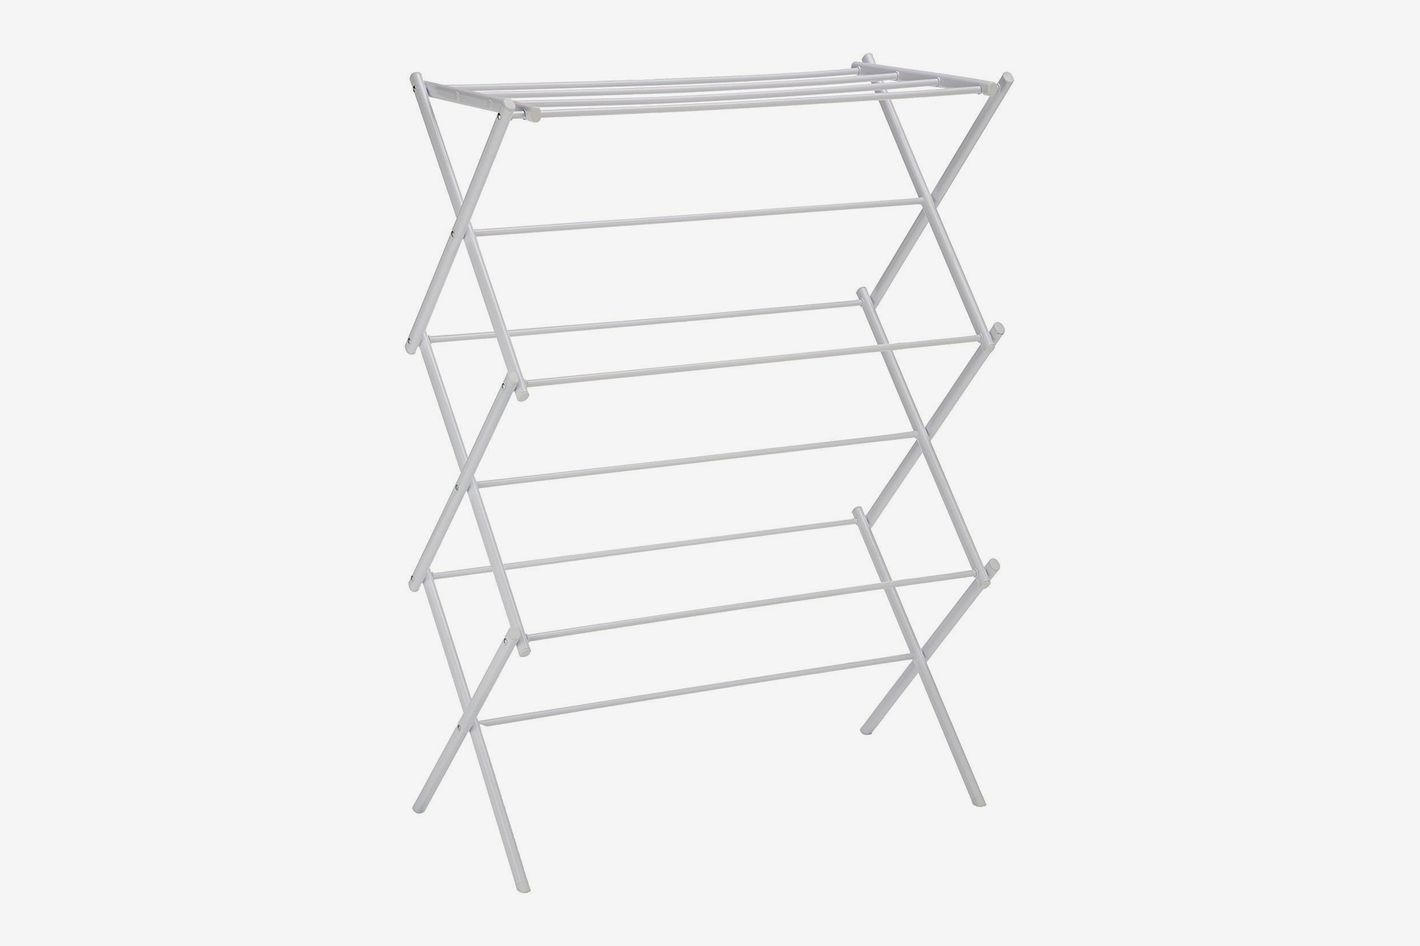 10 Best Clothes Drying Racks 2018